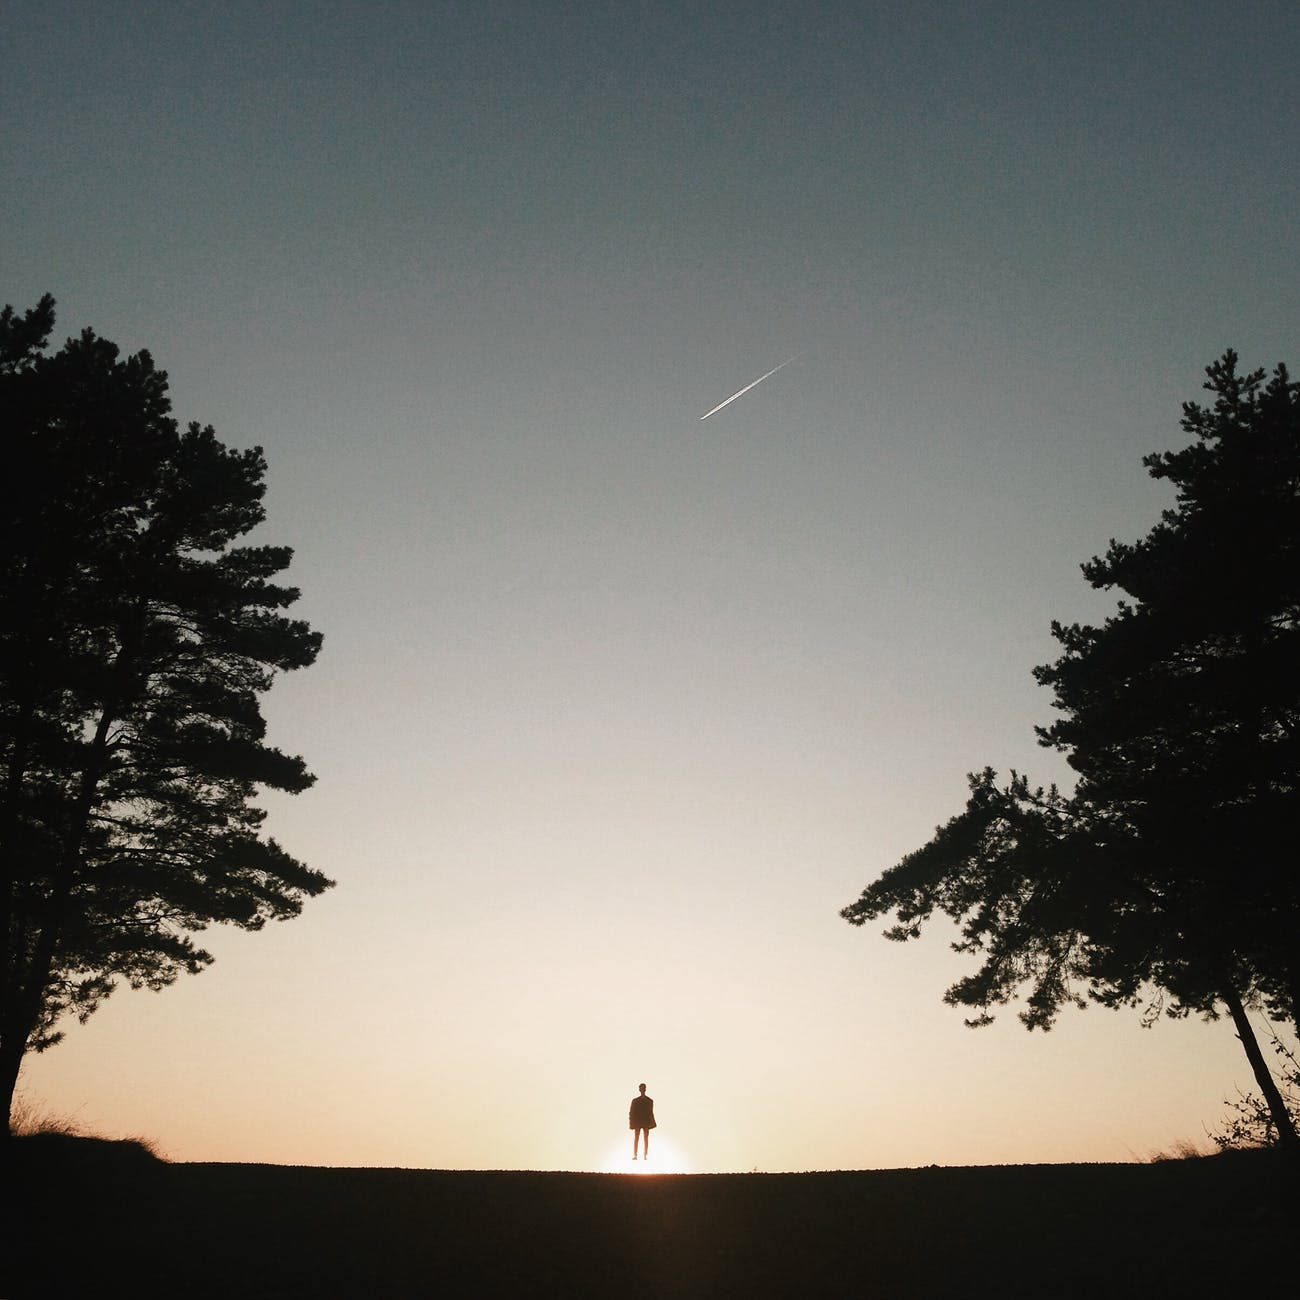 silhouette of anonymous person looking at falling star